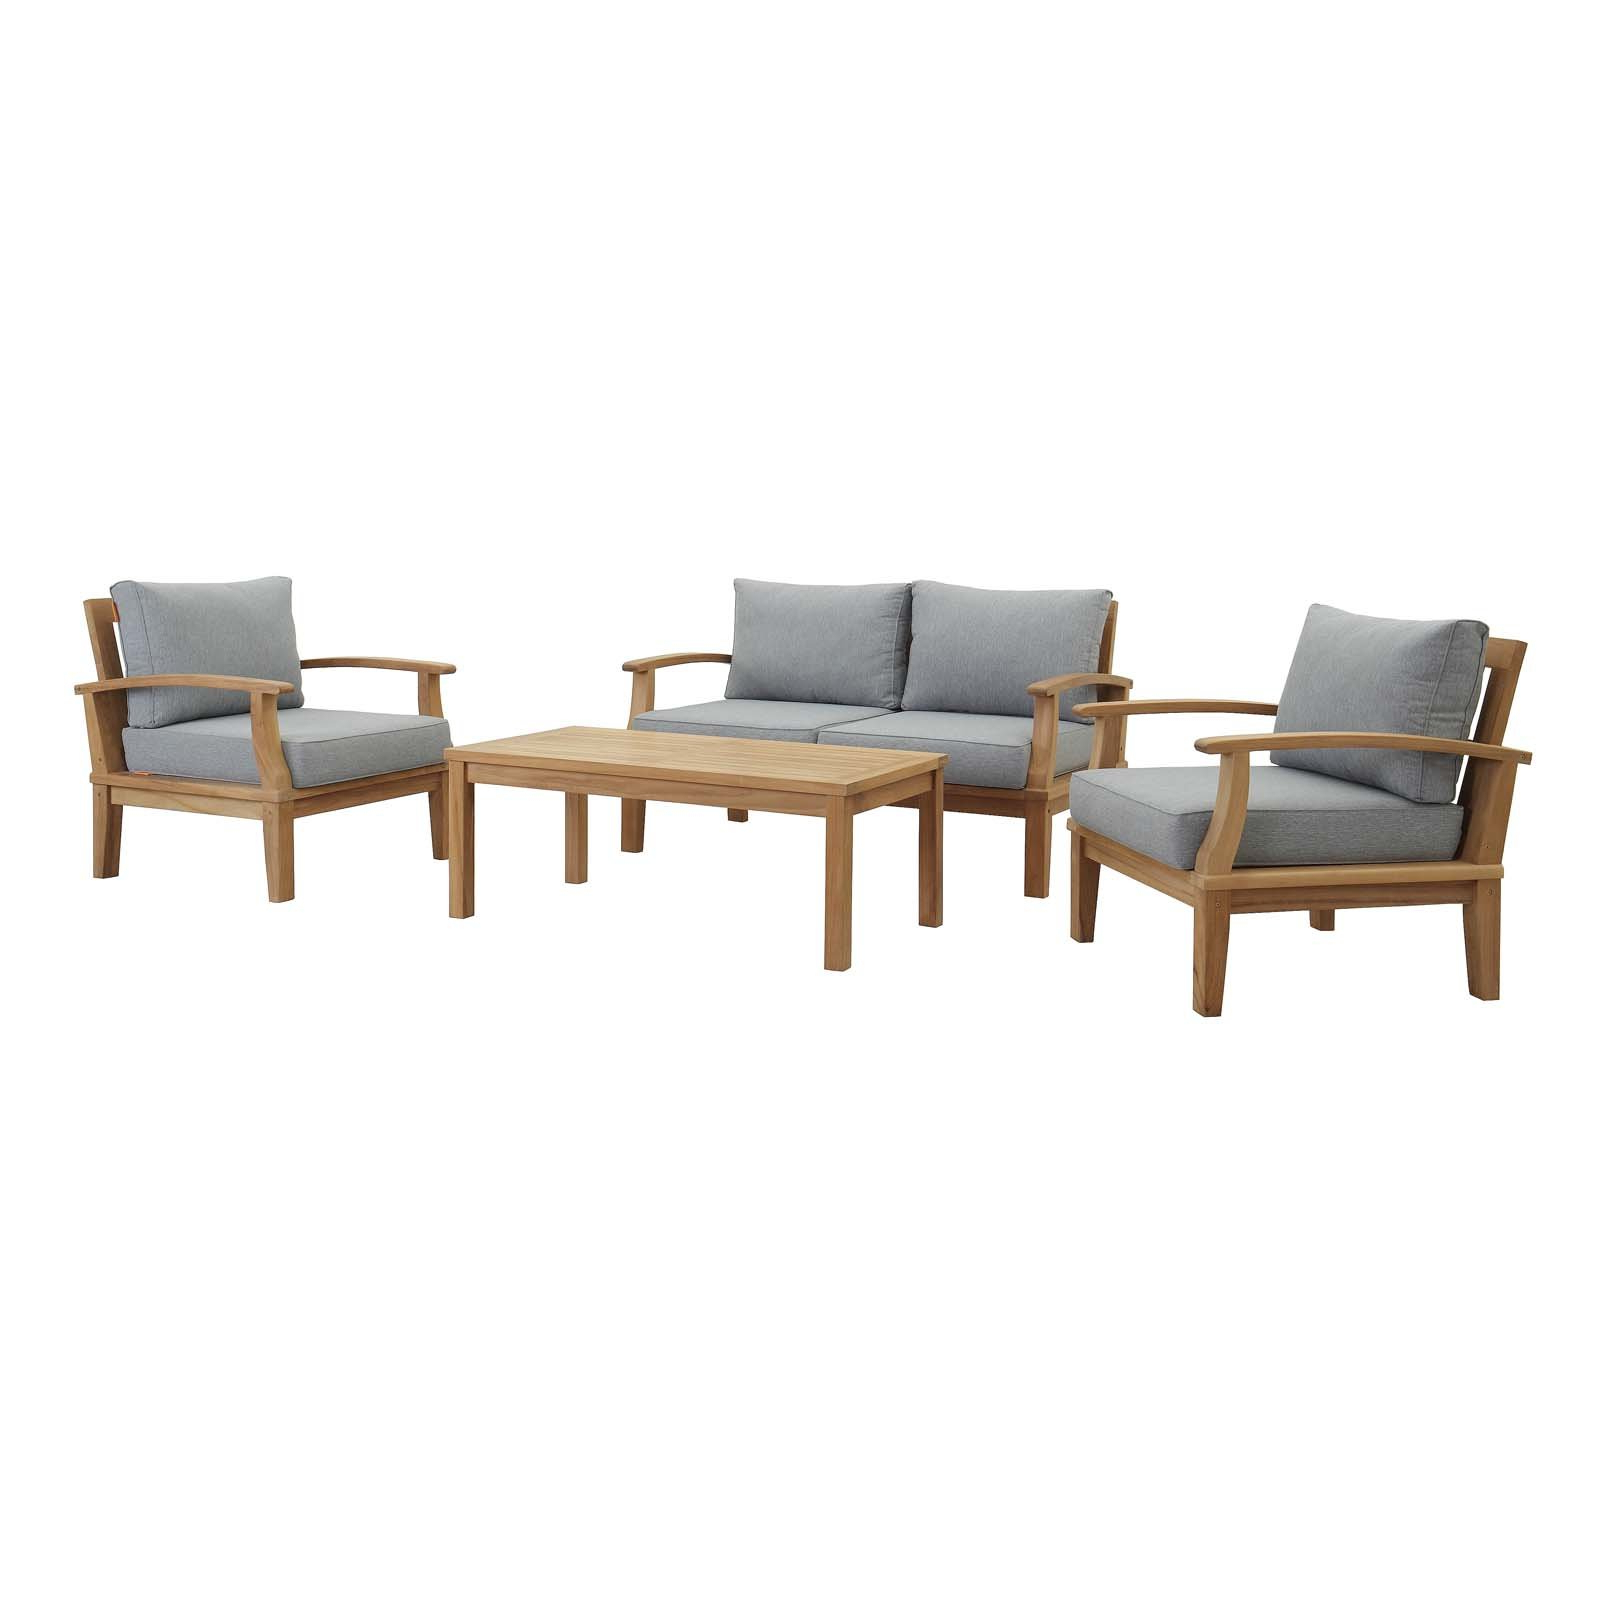 Most Recent Elaina Cantilever Umbrellas Throughout Elaina 4 Piece Teak Sofa Seating Group With Cushions (View 15 of 20)